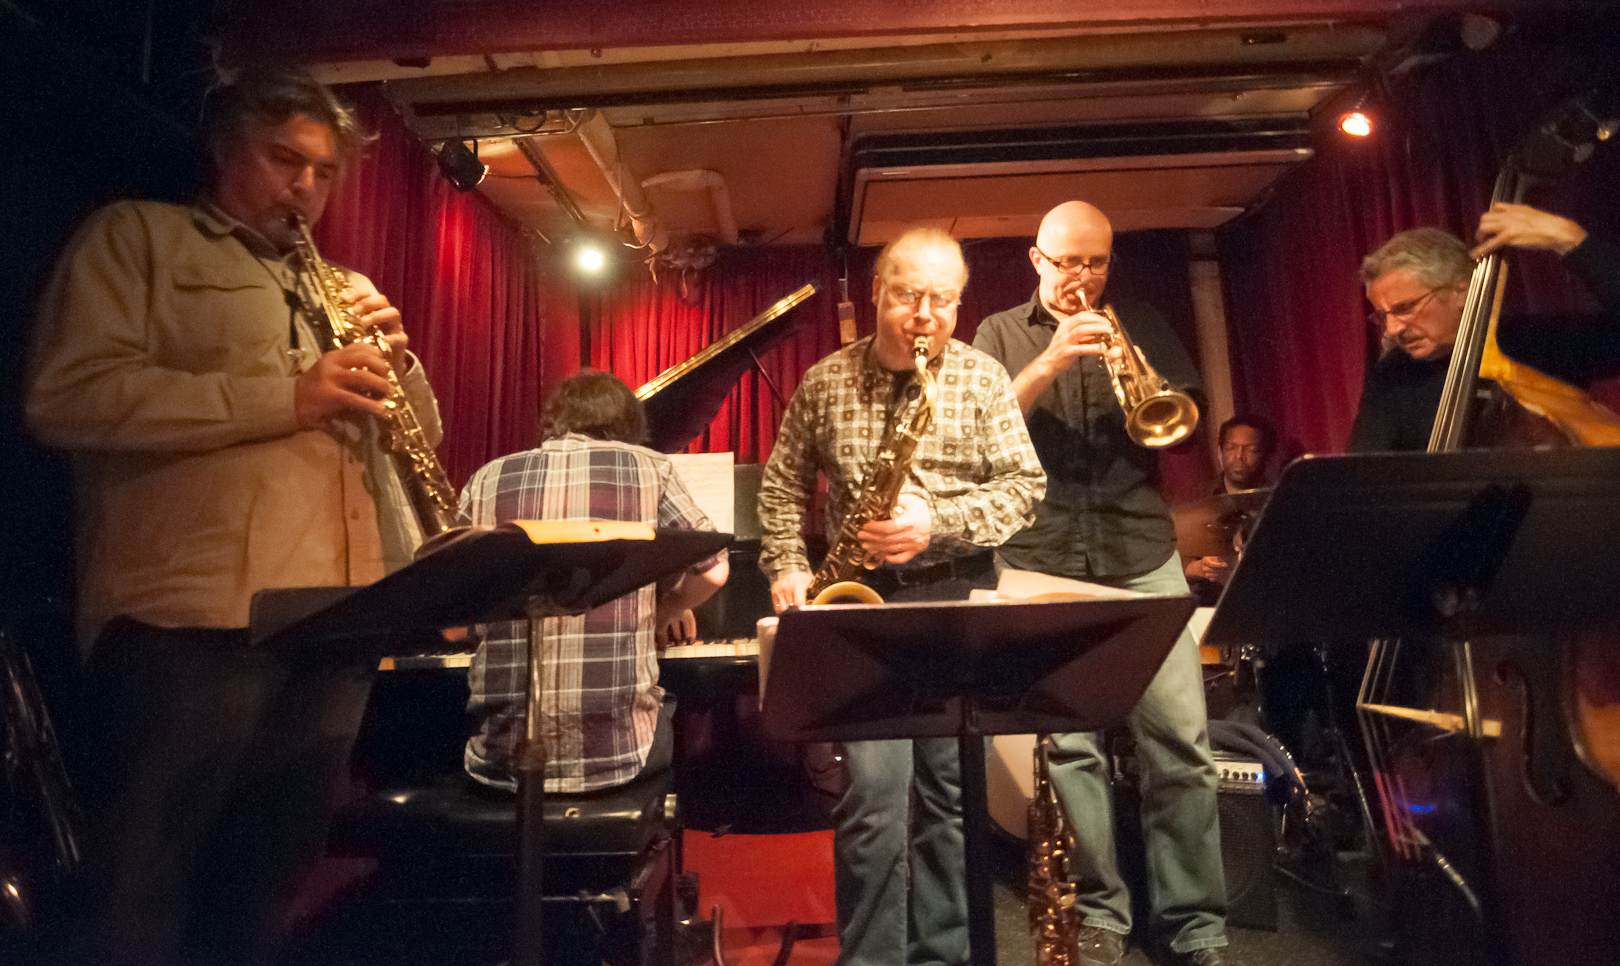 Tony Malaby, Craig Hartley, Phillipe Crettien, Gerald Cleaver and Mario Pavone with the Mario Pavone Mythos Sextet at Cornelia Cafe